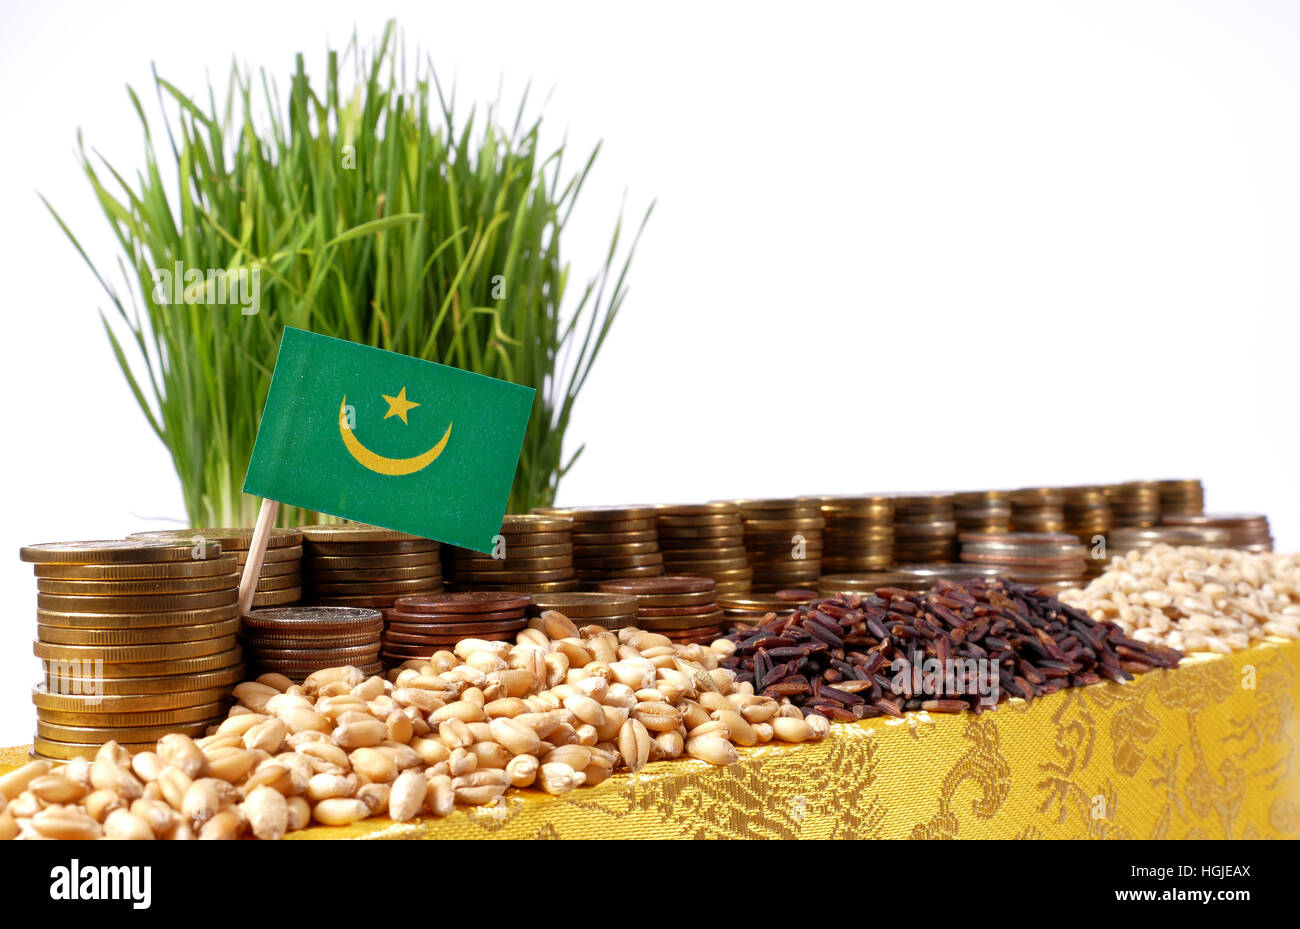 Mauritania flag waving with stack of money coins and piles of wheat and rice seeds - Stock Image